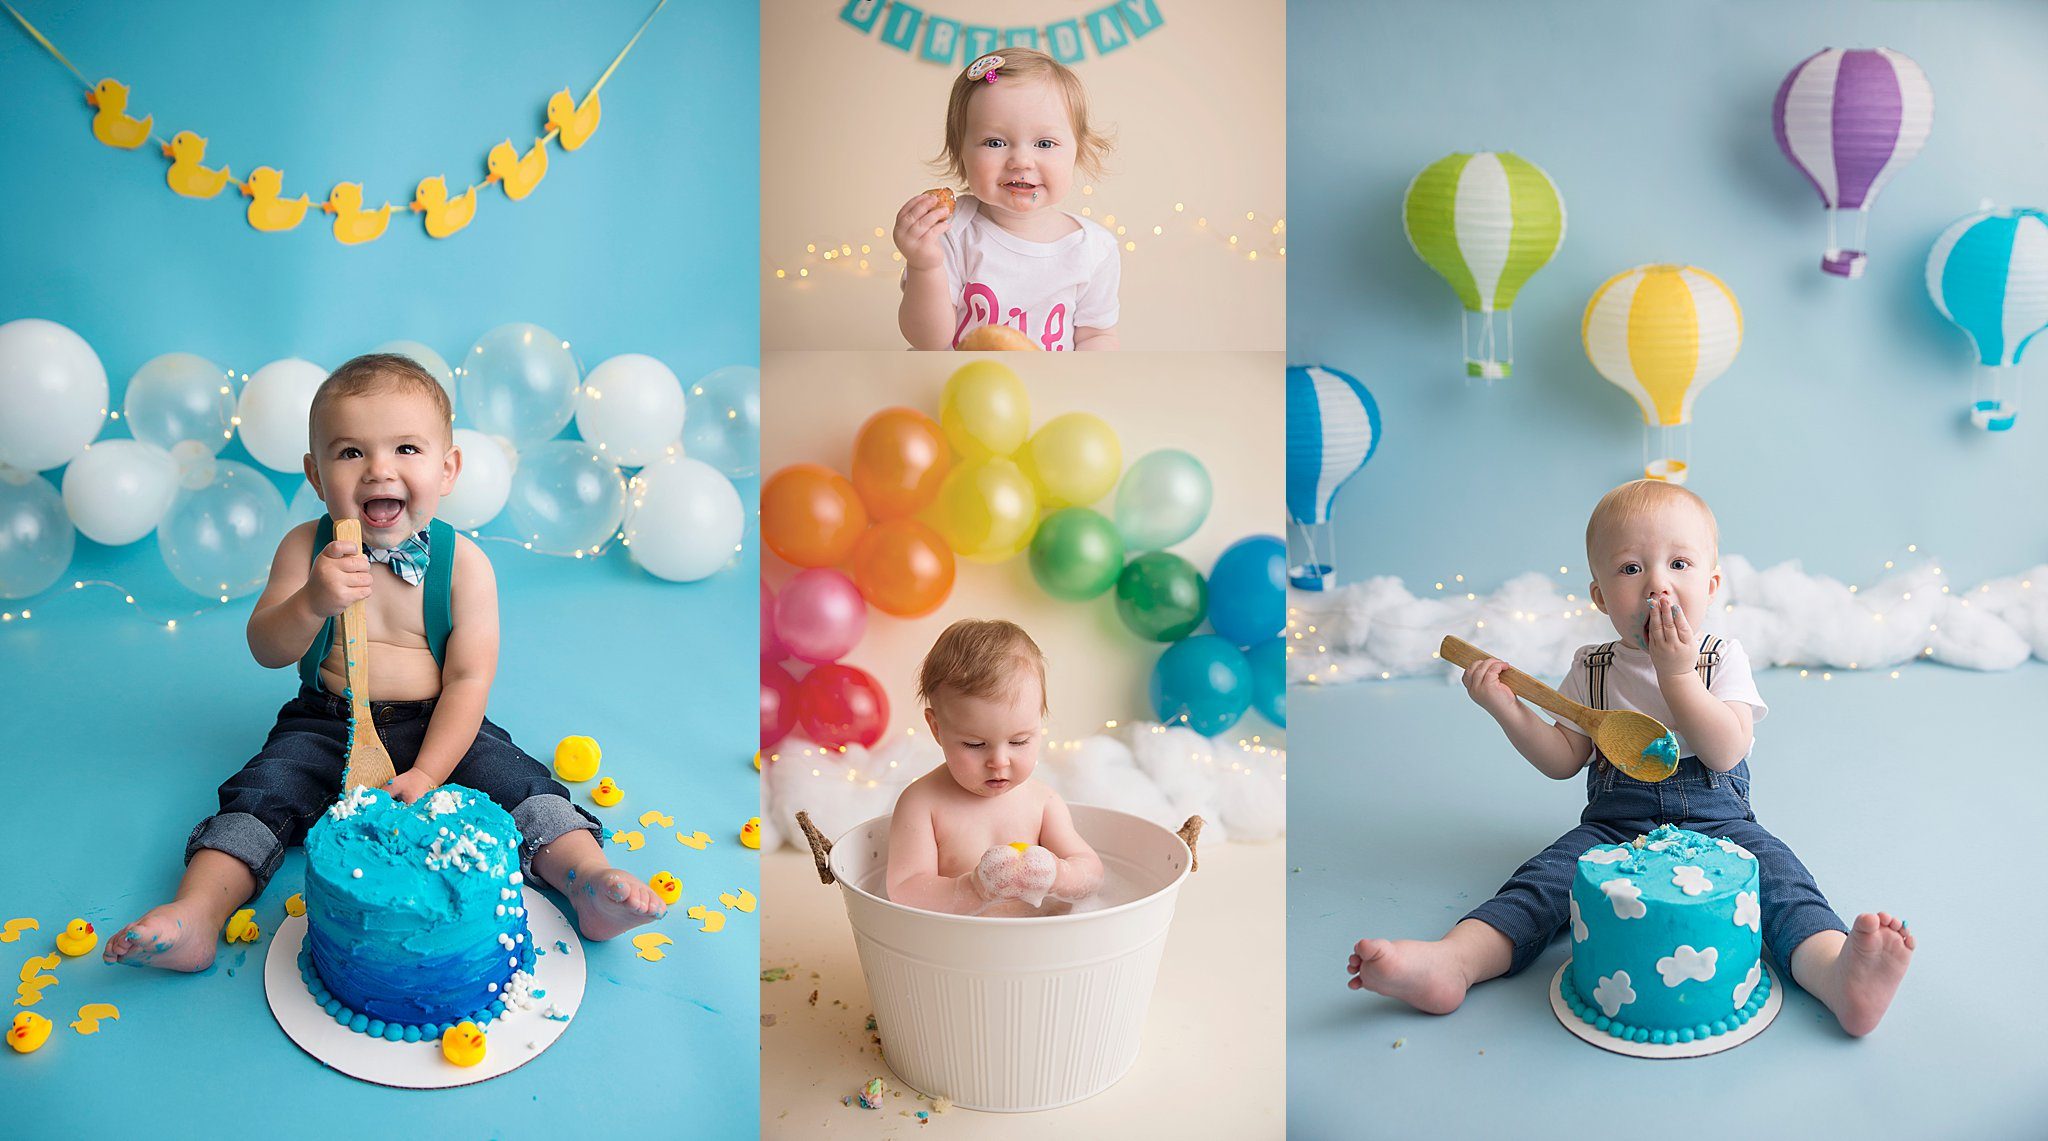 Amie Roberts Photography, Fort McMurray Cake Smash Photographer, Fort McMurray Photographer, Cake Smash Photography, Bubble Bath, Donut Smash